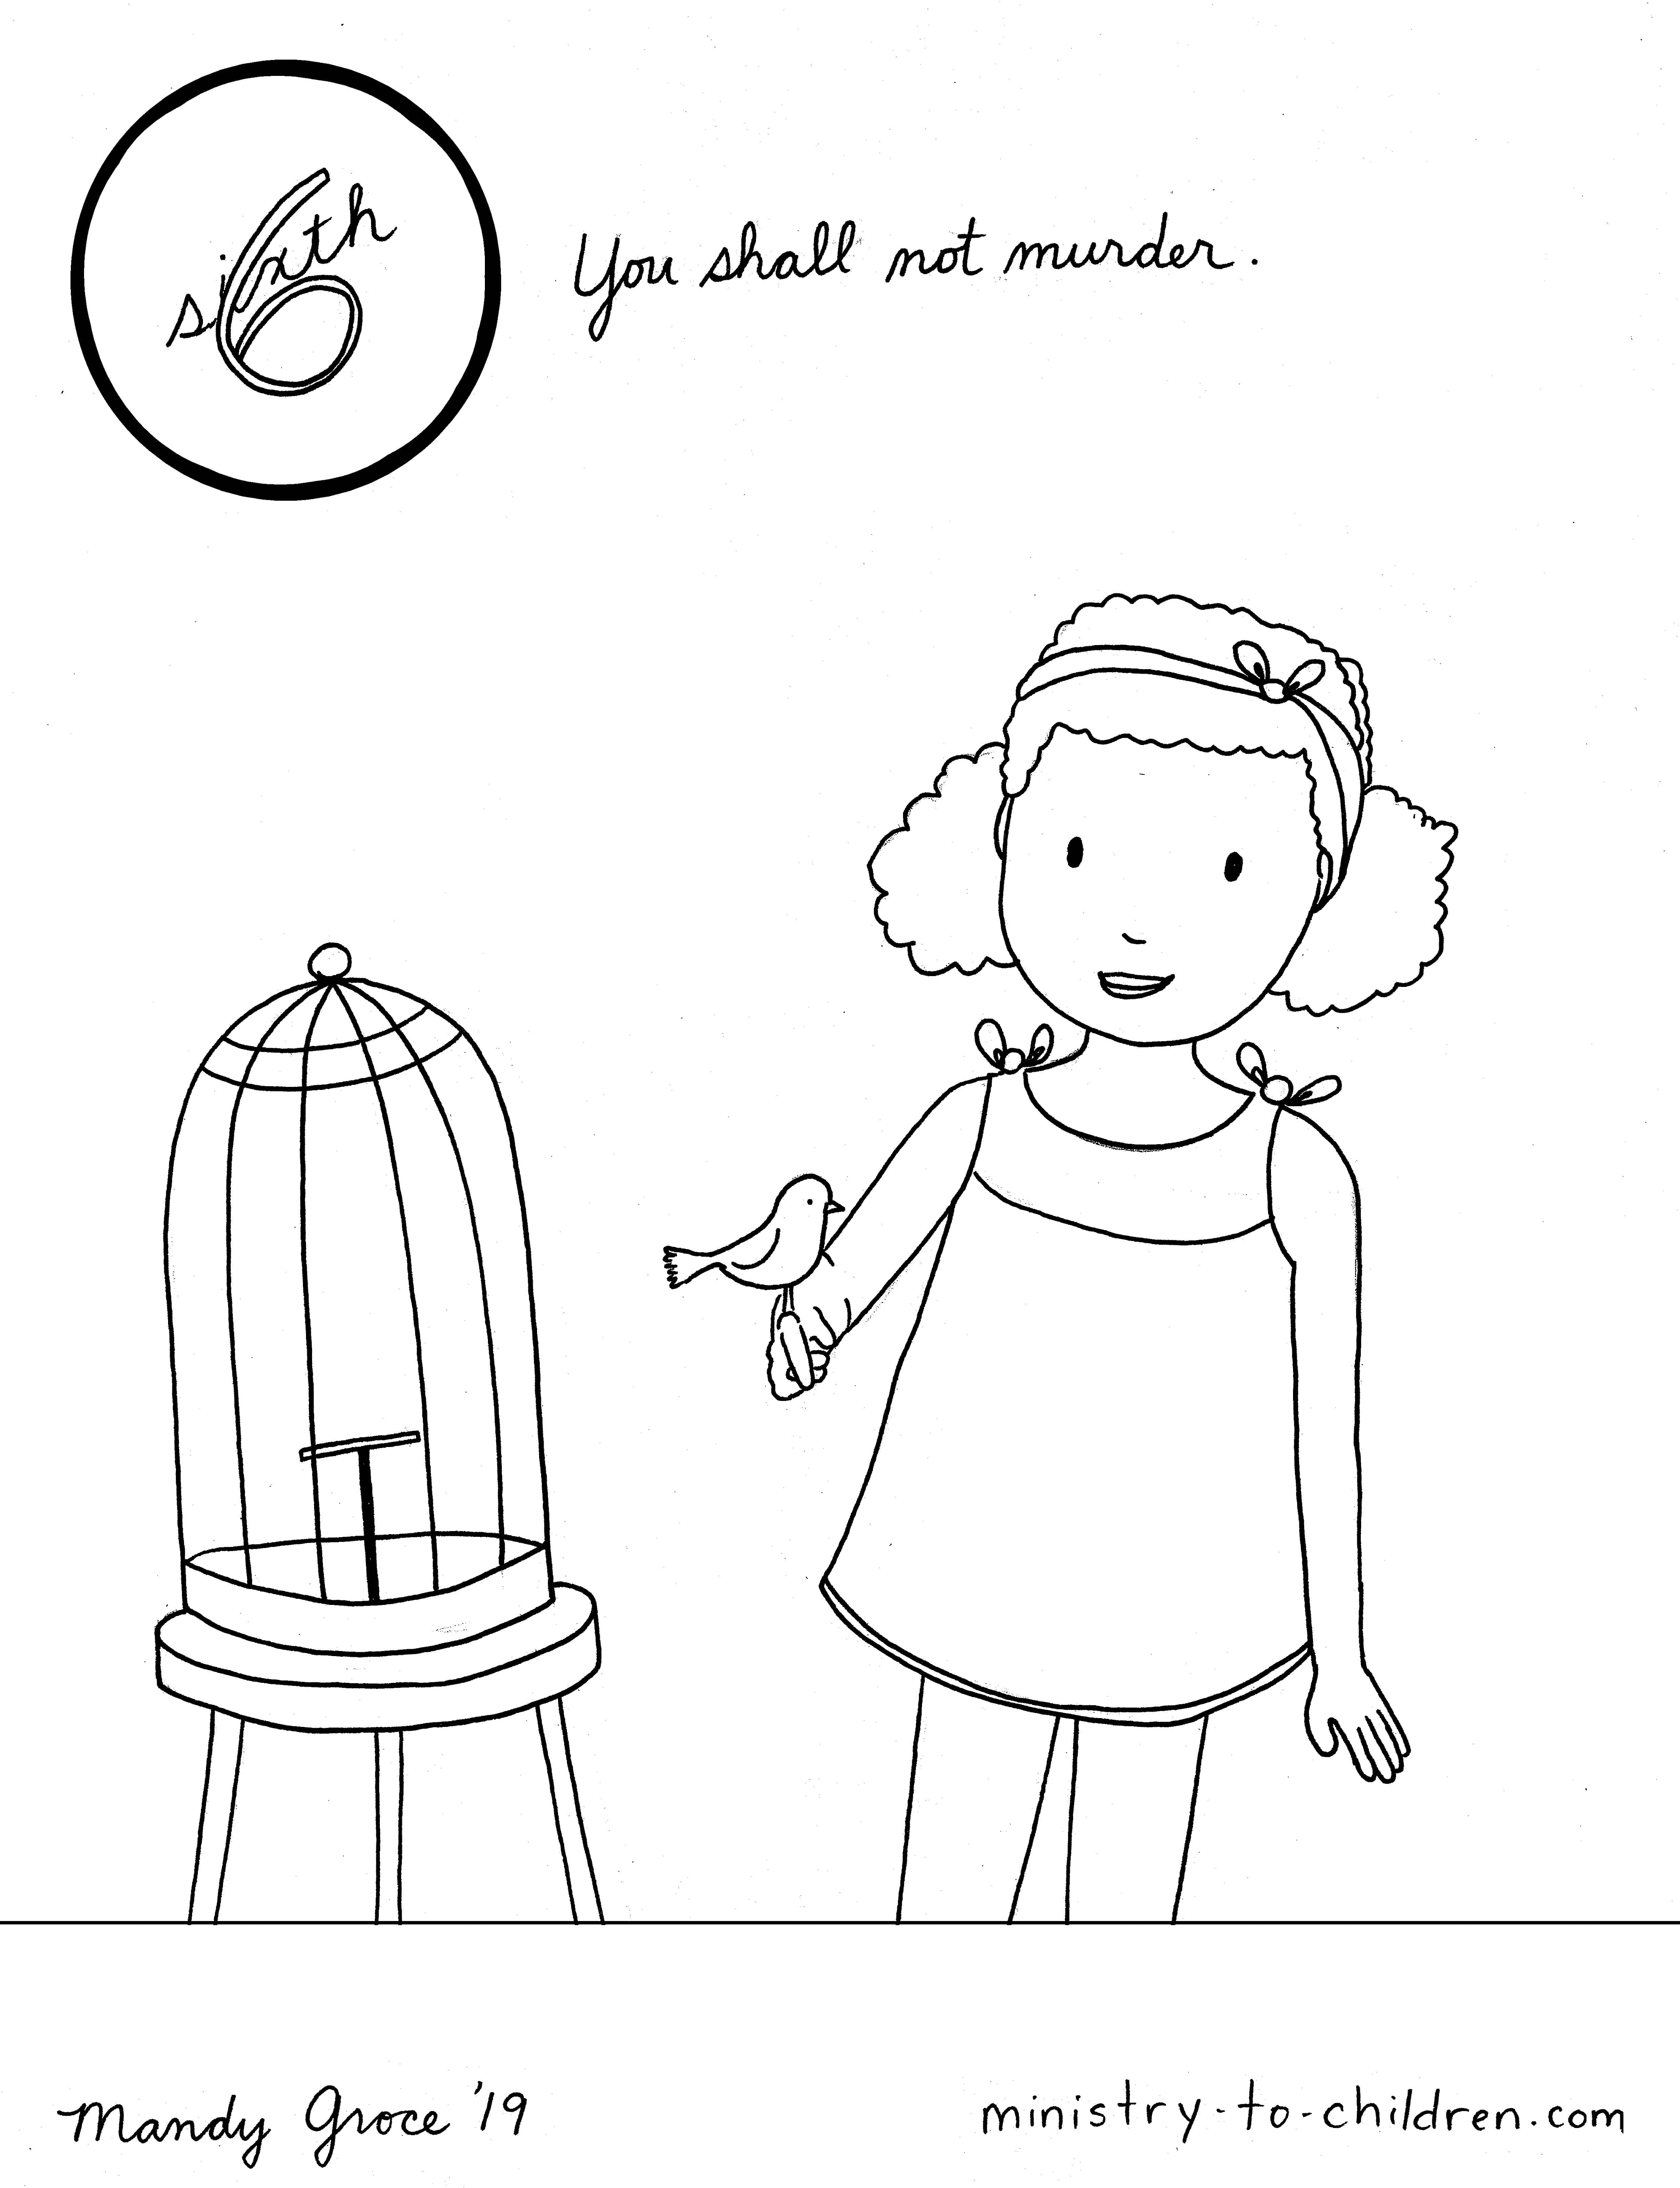 little girl coloring pages not copyrighted | 6th Commandment Coloring Page: You Shall Not Murder ...